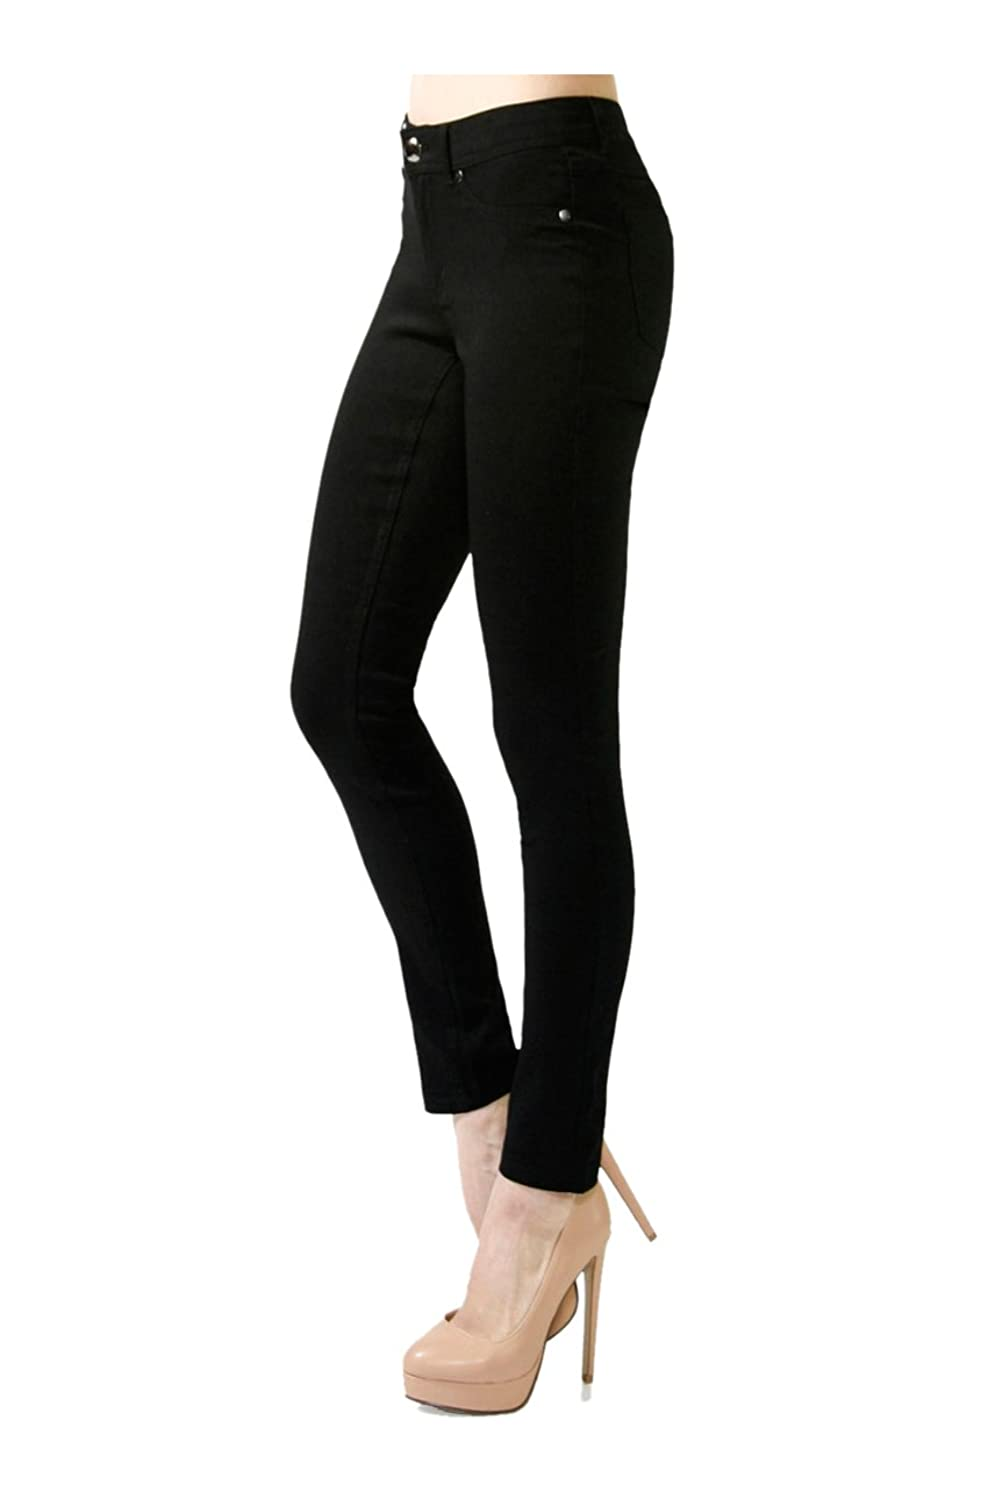 2LUV Women's Skinny Stretch Bengaline Ponte Pants